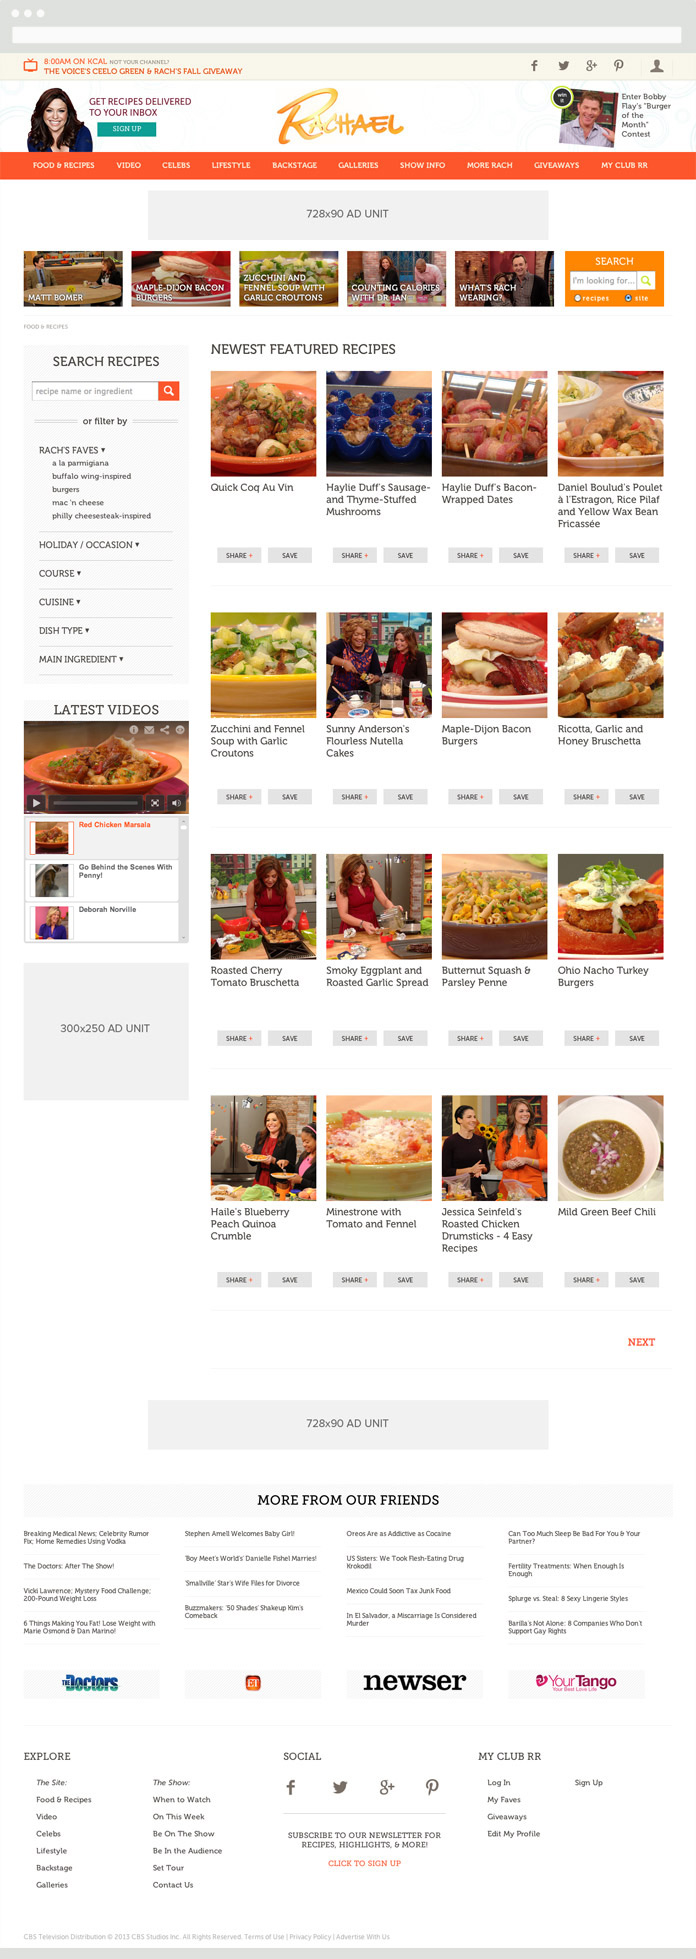 Image of the Rachael Ray Show Food Page